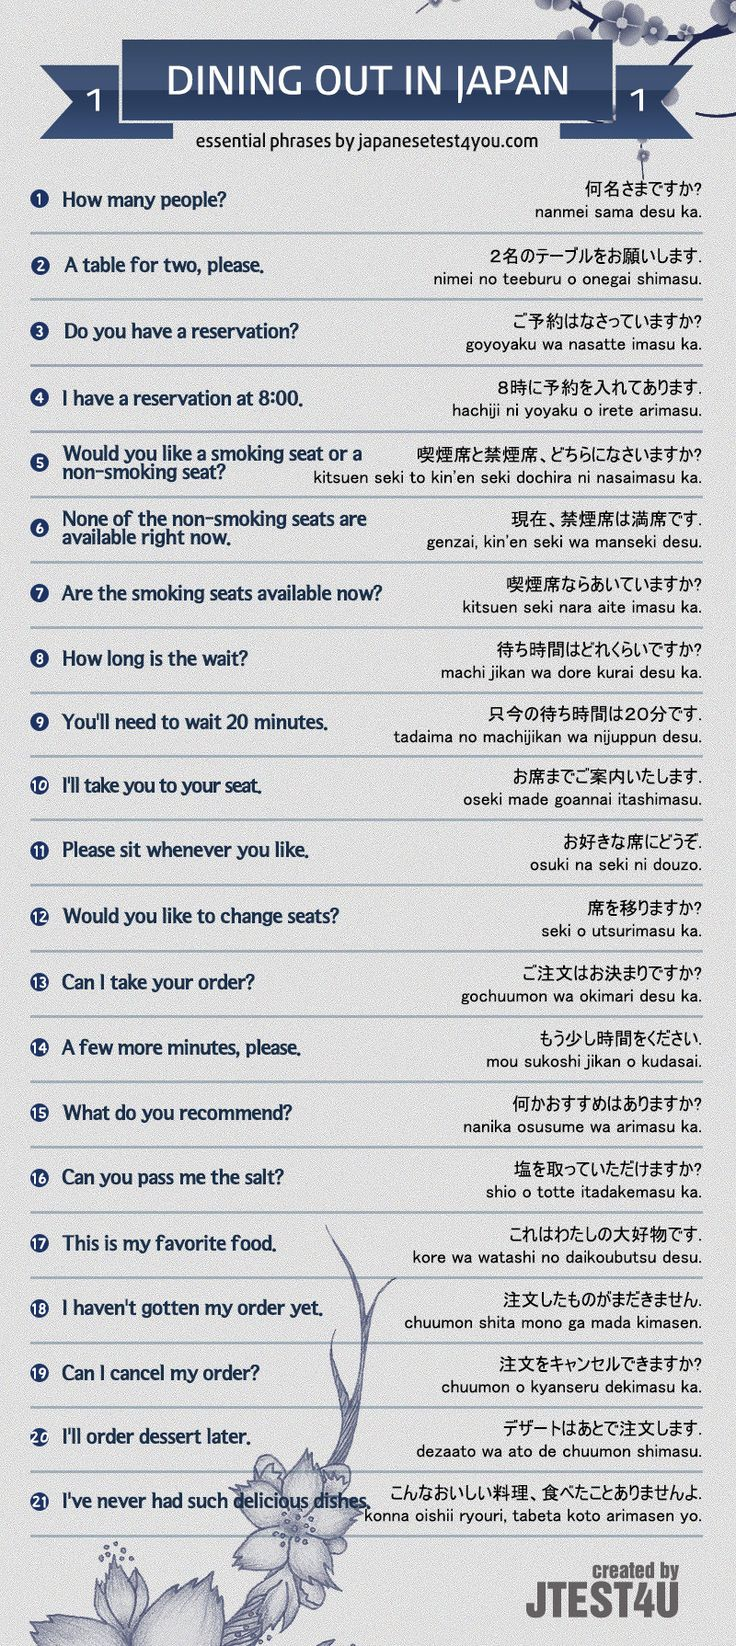 japanese essay writing phrases Essay writing helpful phrases in japanese comparative essay useful phrases in japanese 1 day ago a: comparative essay useful phrases in japanese i am still writing.